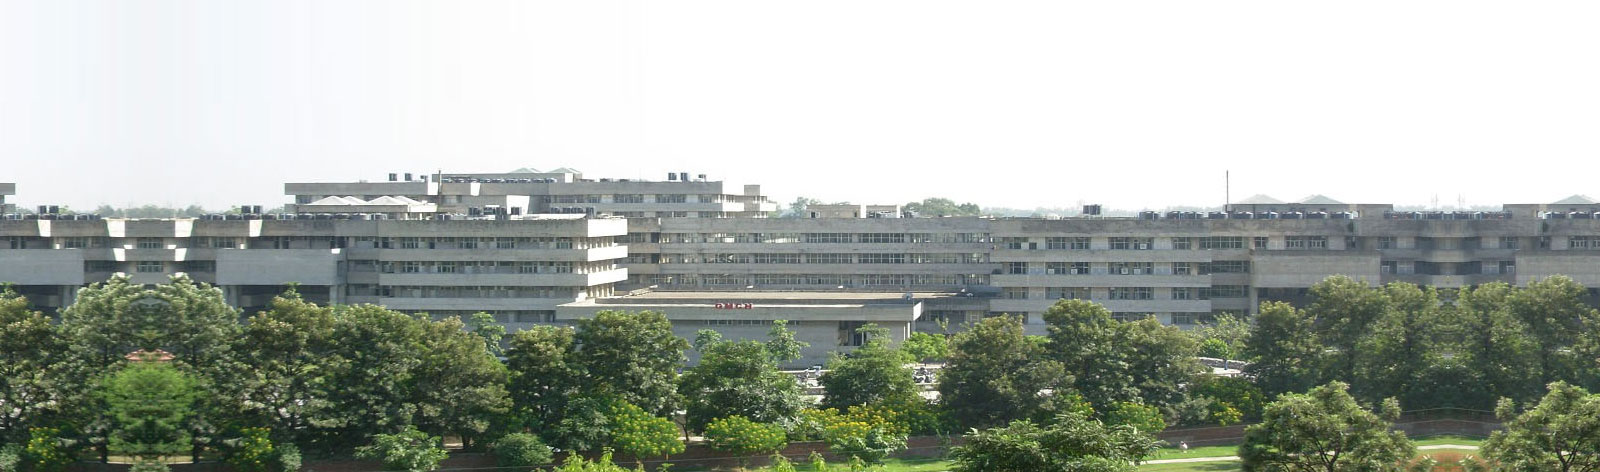 GMCH-Department